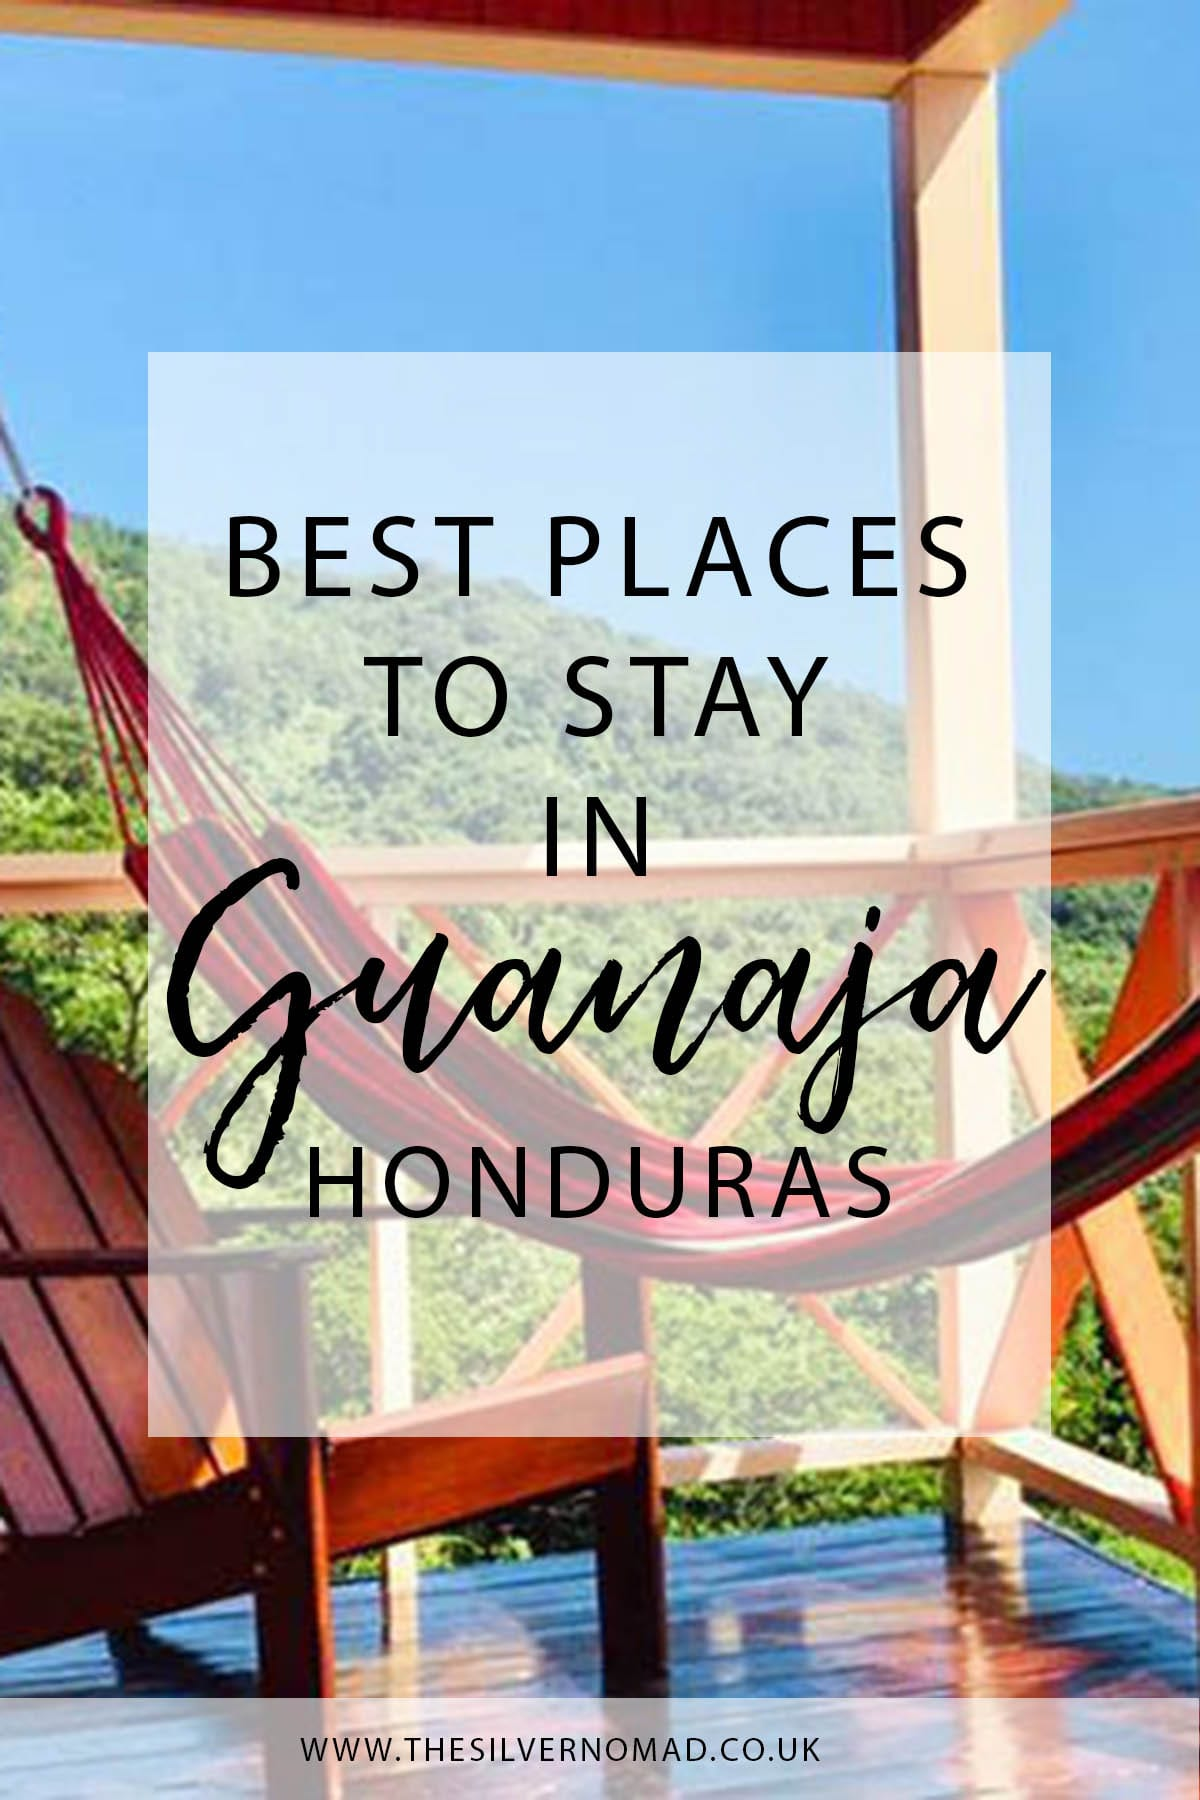 The best places to stay in Guanaja Honduras with hammock in the background